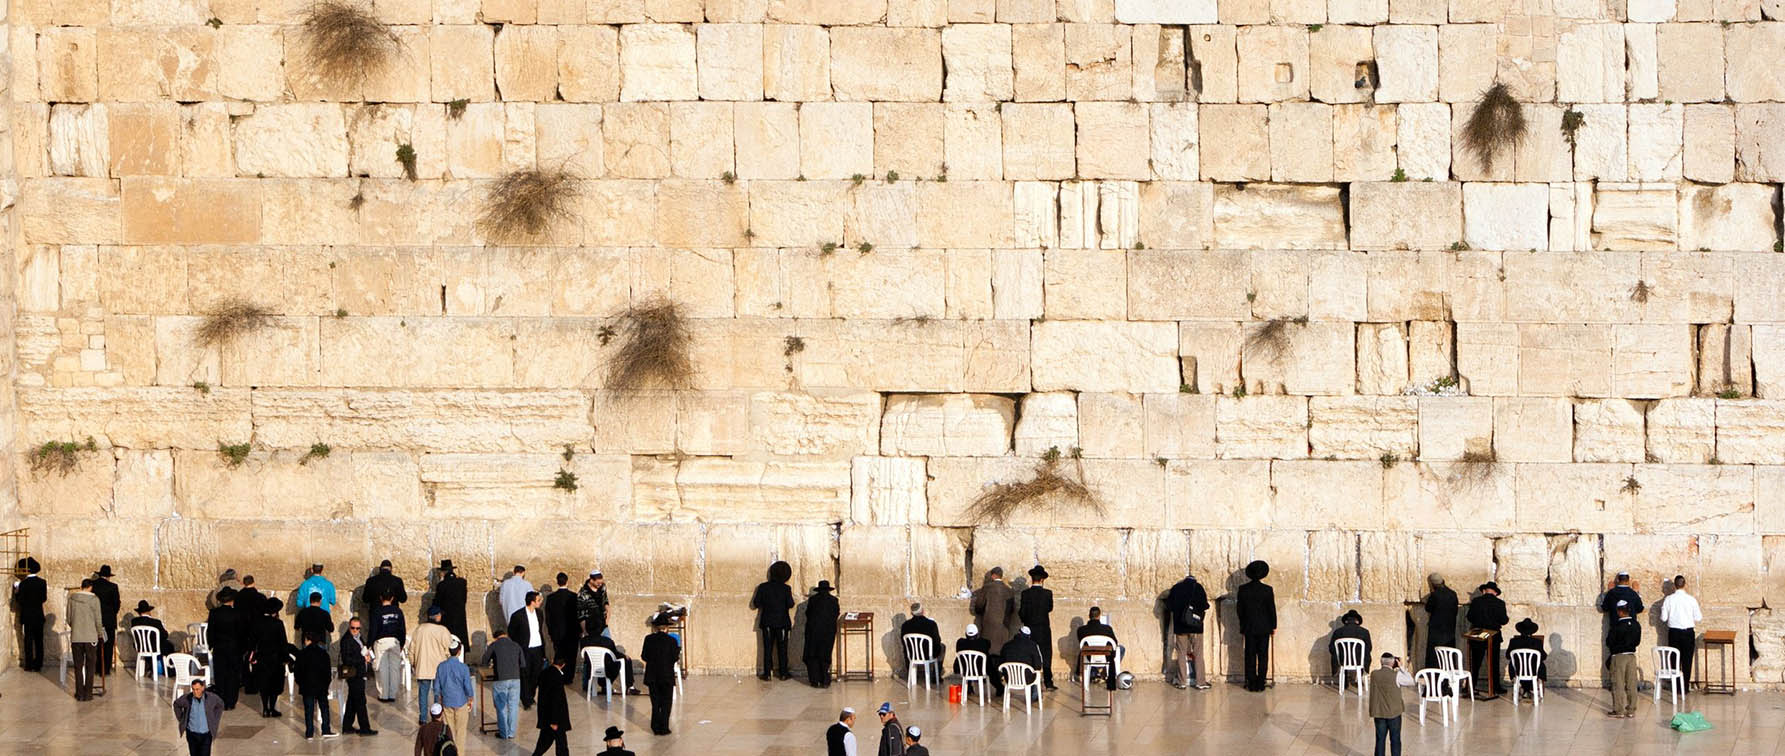 1800_western wall banner